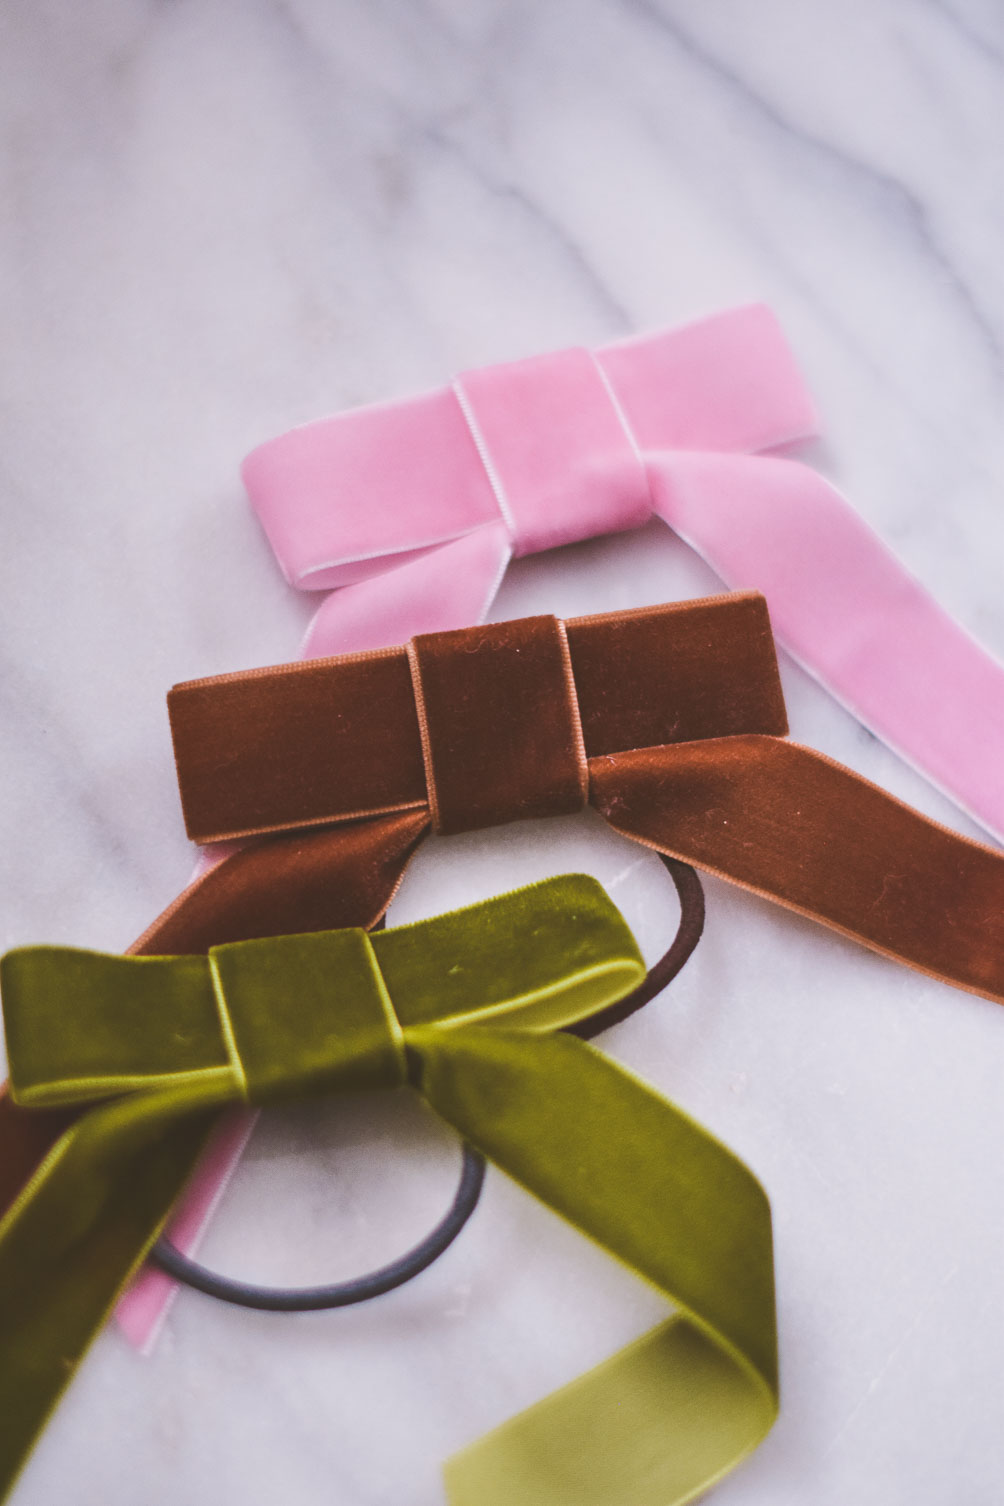 sharing a quick and easy tutorial for this diy velvet hair tie in assorted colors